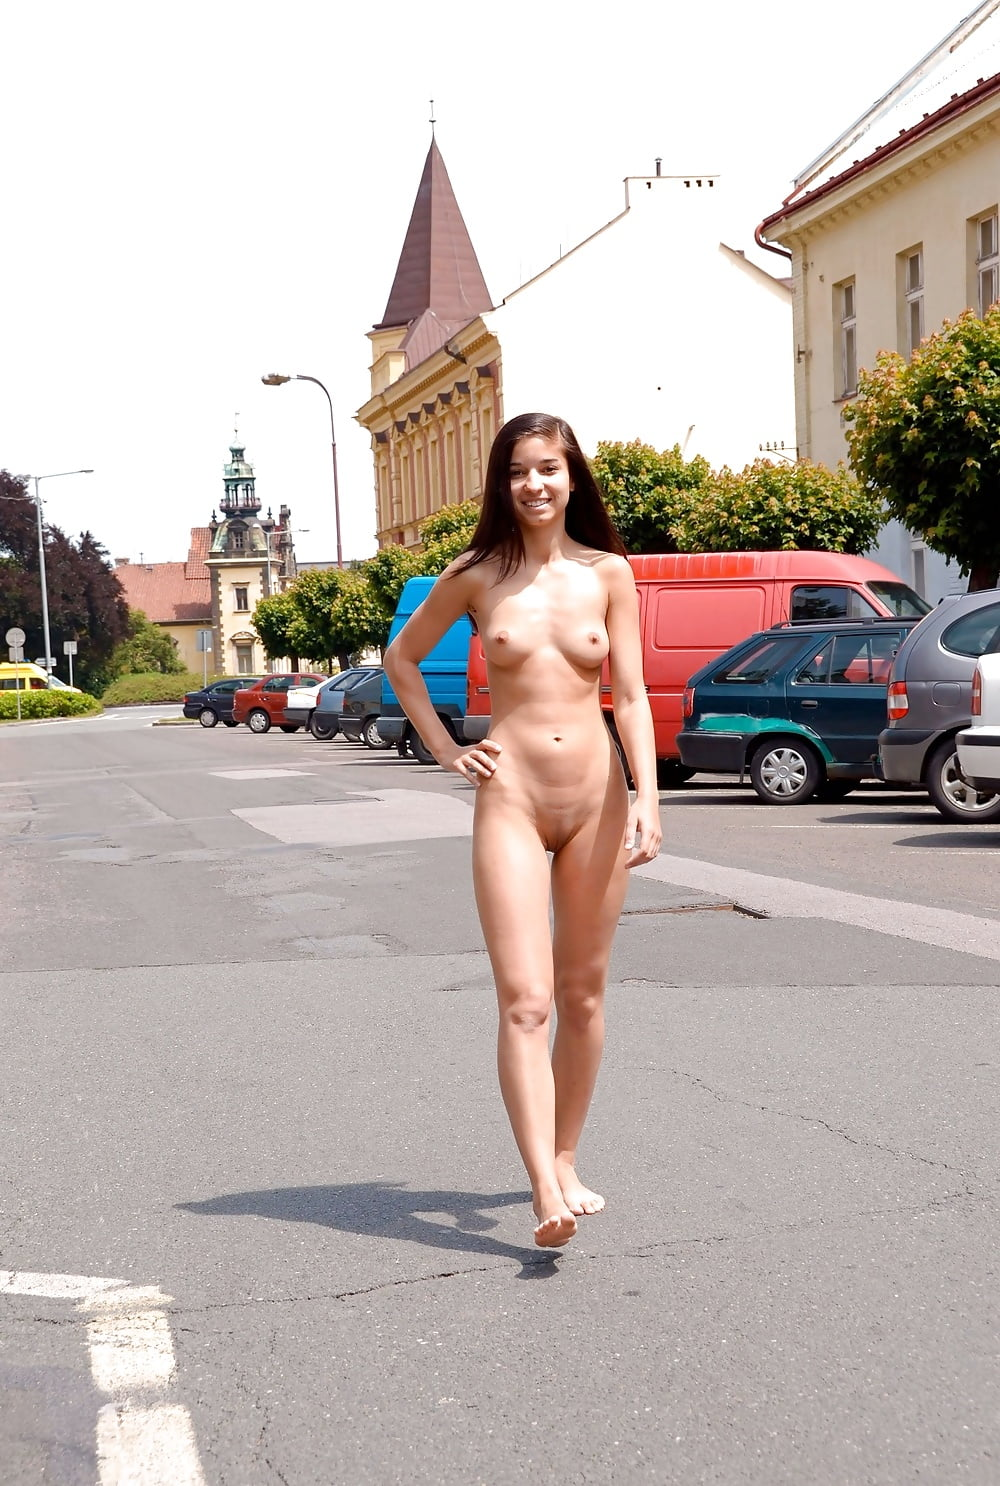 judy-is-nude-in-public-sex-court-the-movie-streaming